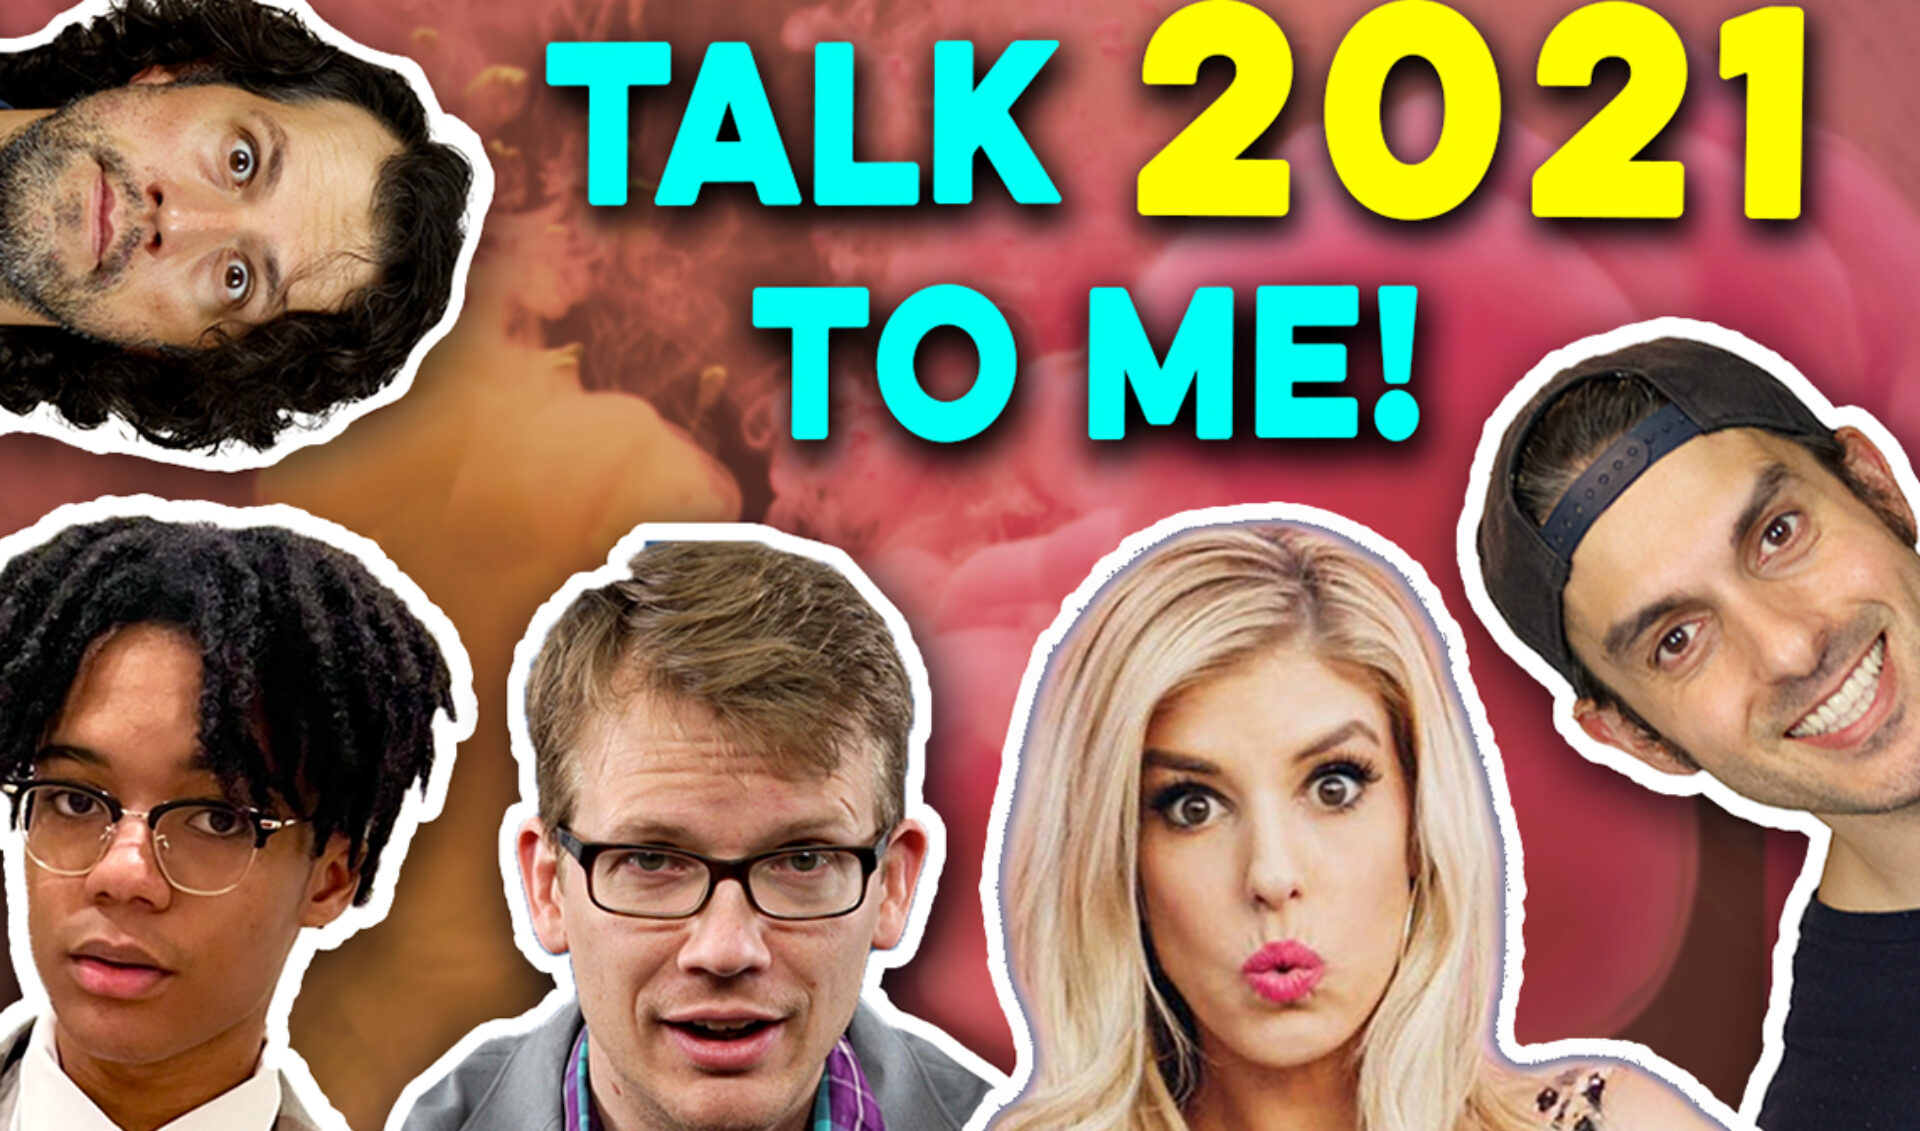 2021 Predictions For YouTube, feat. D'Angelo Wallace, Rebecca Zamolo, And Hank Green